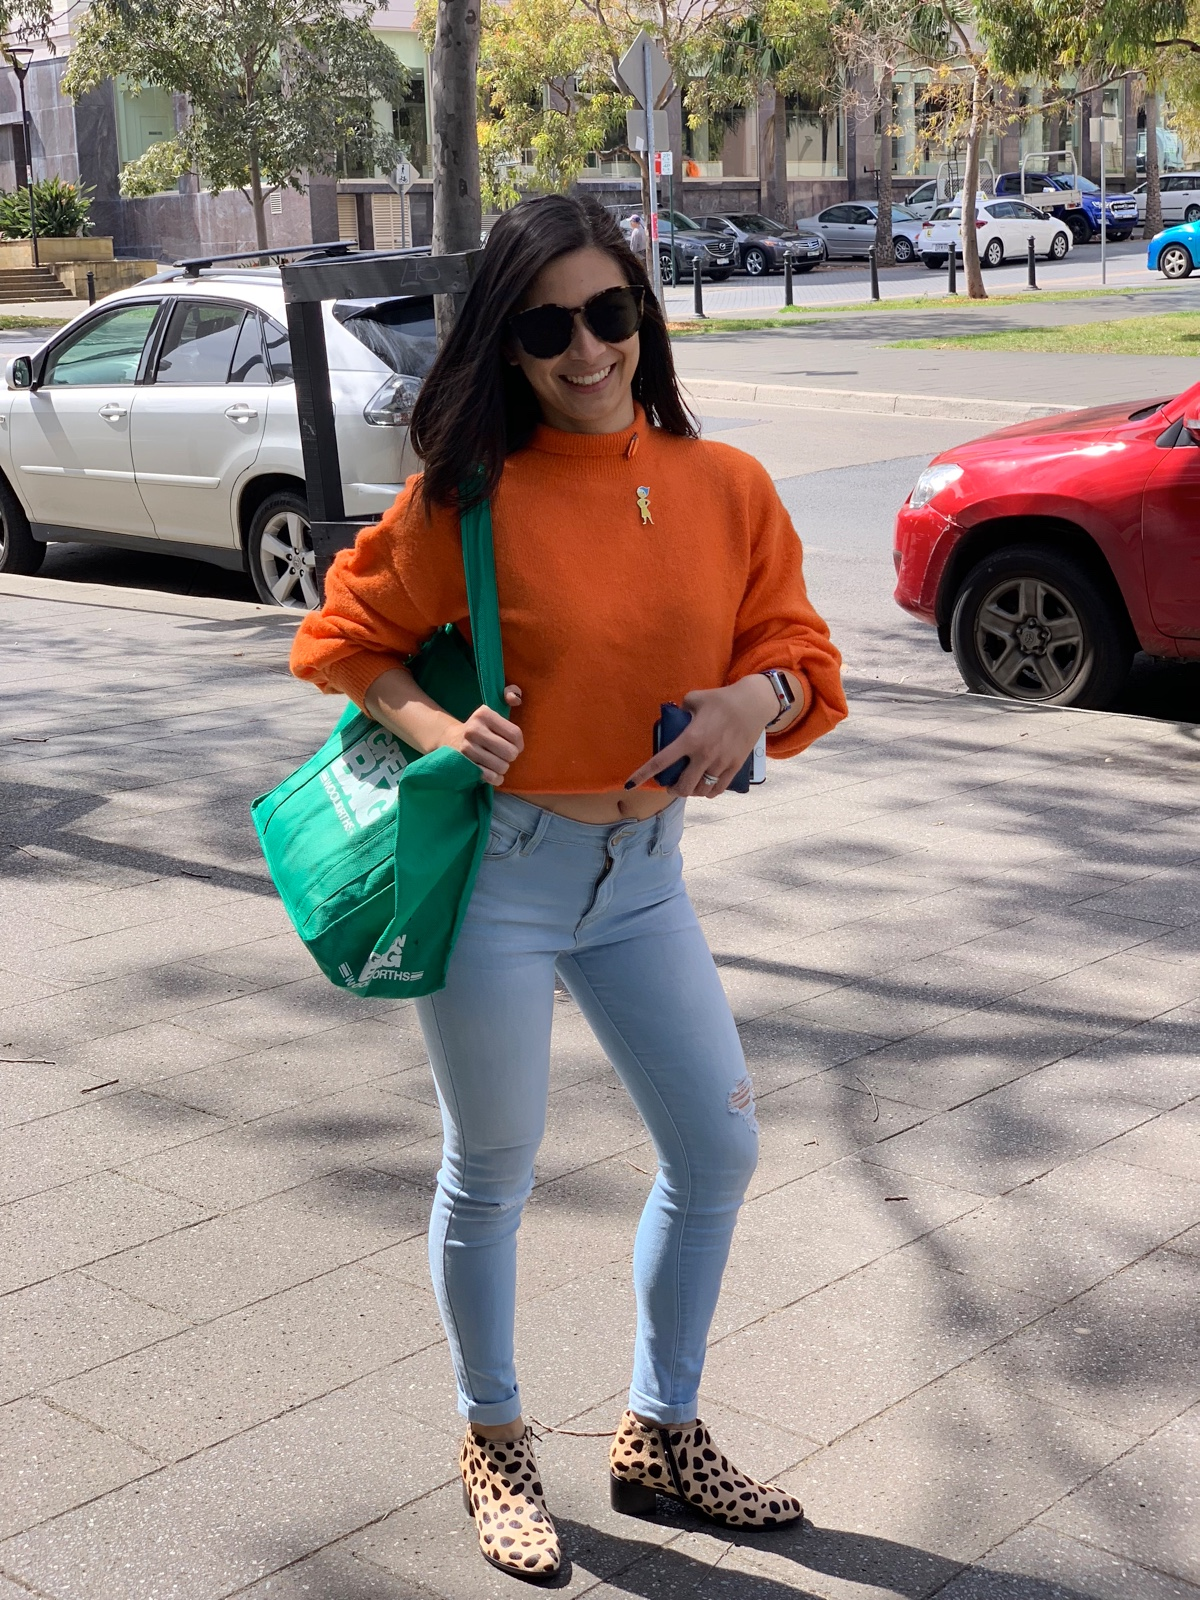 A woman with sunglasses wearing an orange sweater and light blue jeans. She is holding a green grocery bag over her arm.